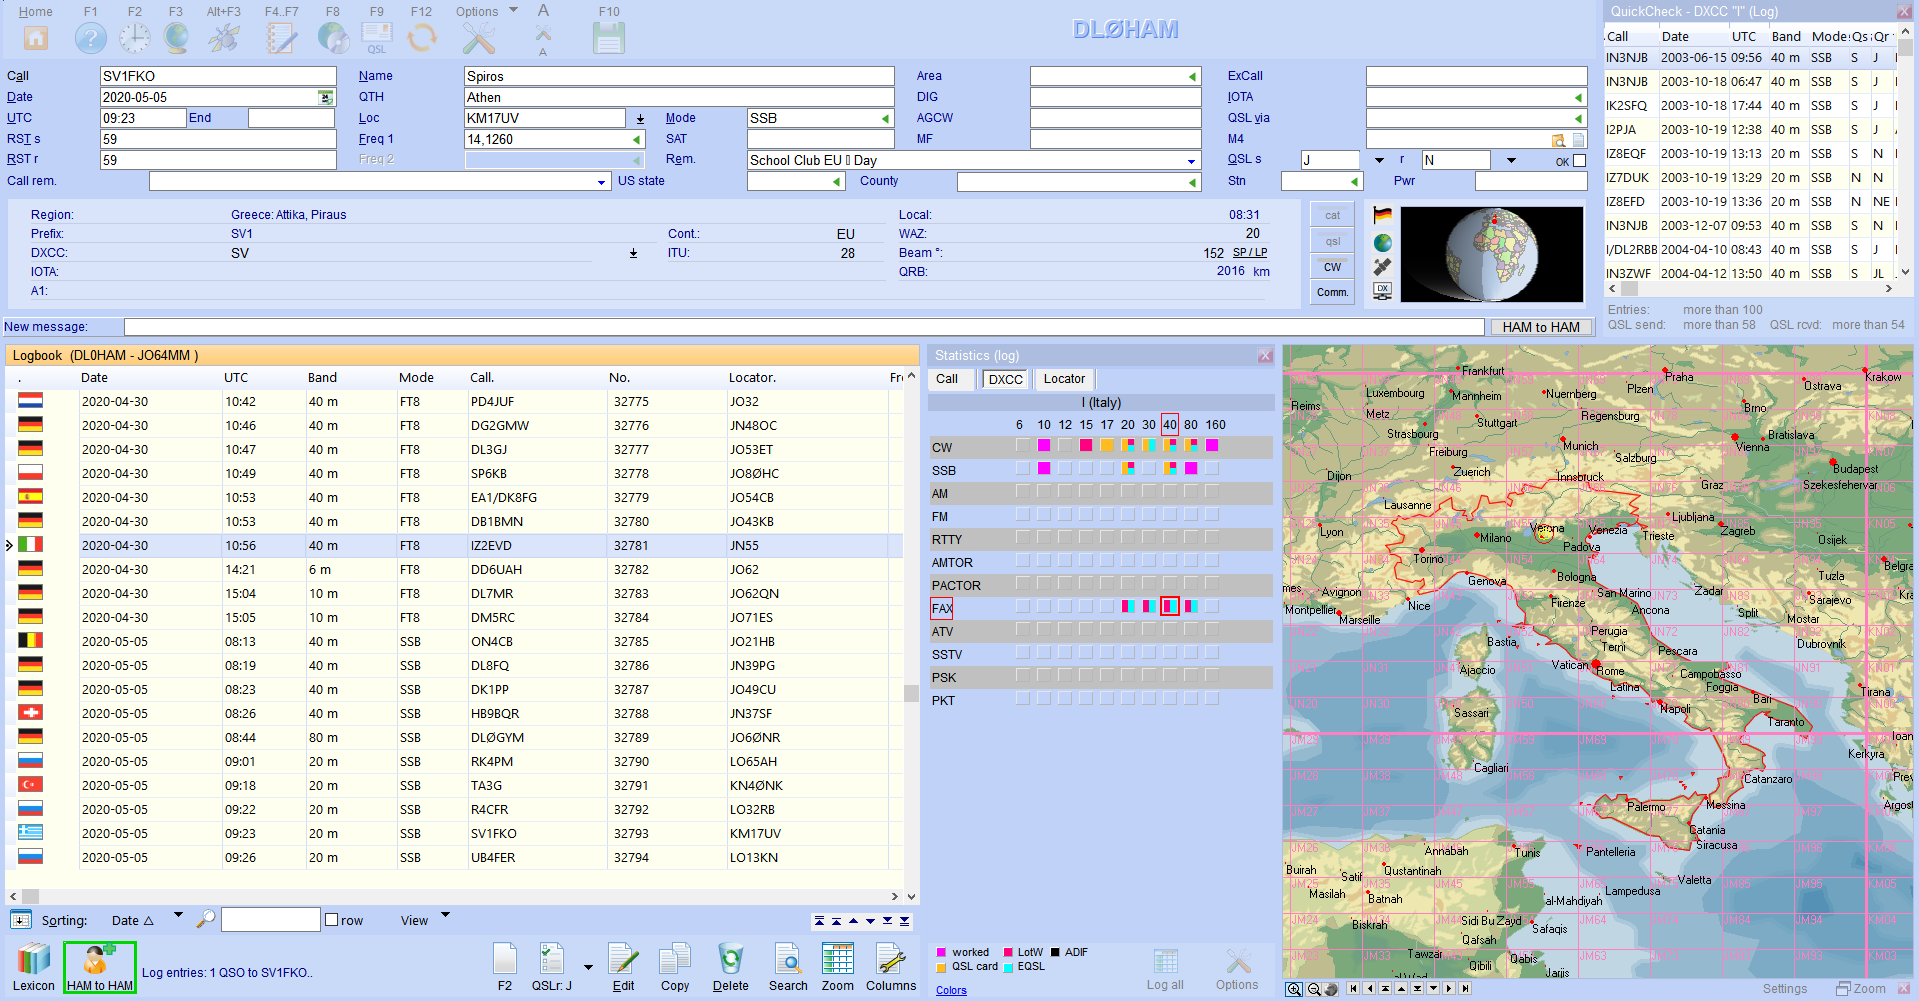 qso-input layout with quickcheck map and statistics hamoffice my amateur radio logbook